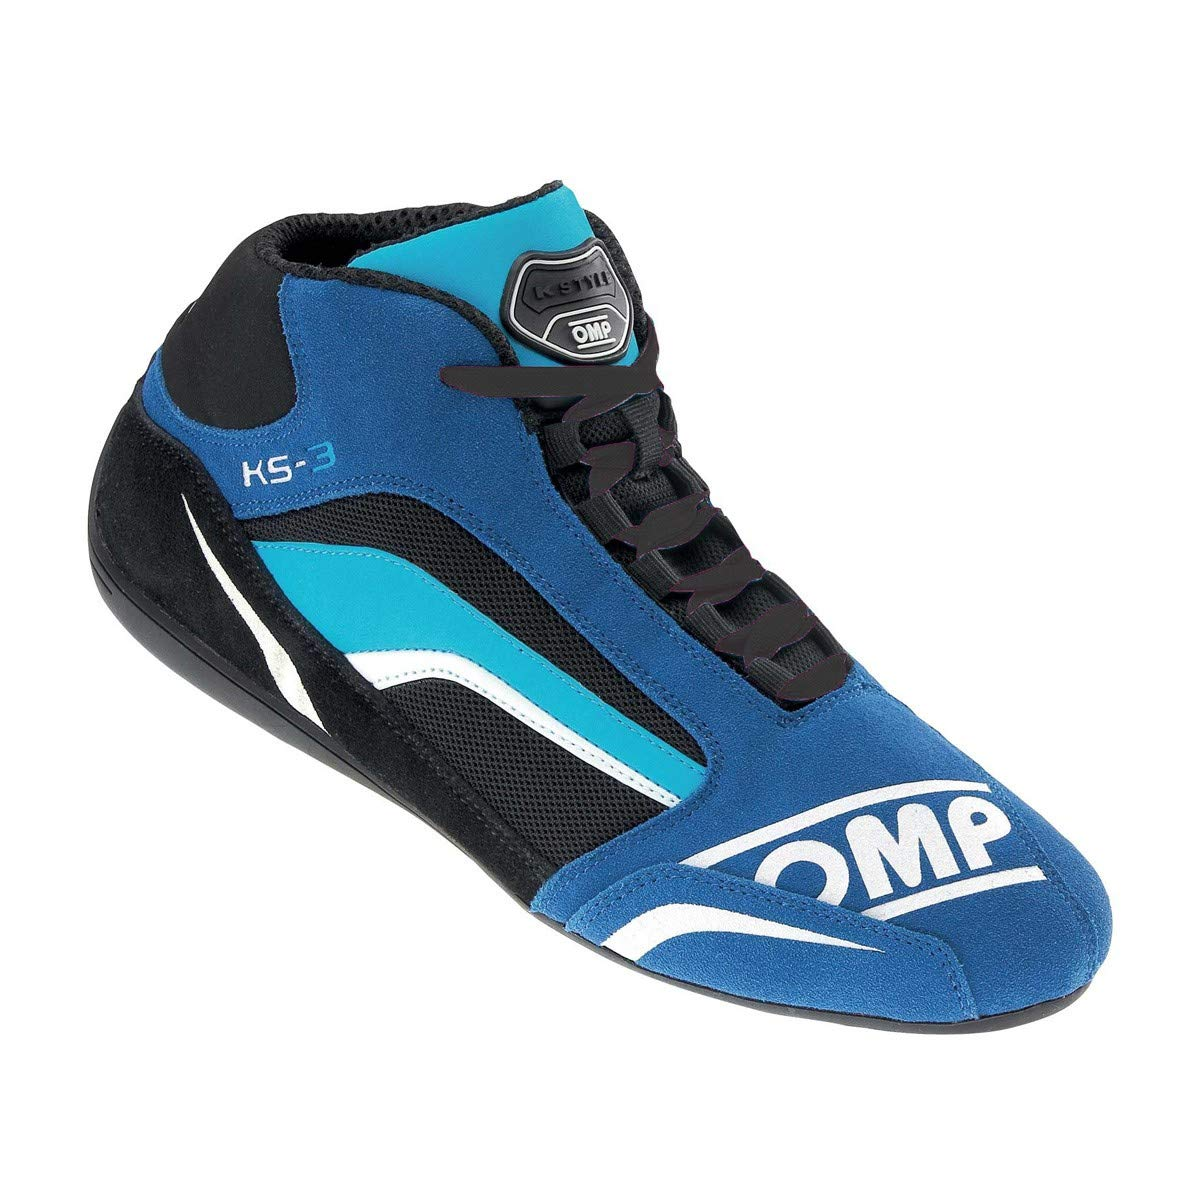 OMP Unisex-Adult KS-3 Shoes (Blue/Cyan, 45)